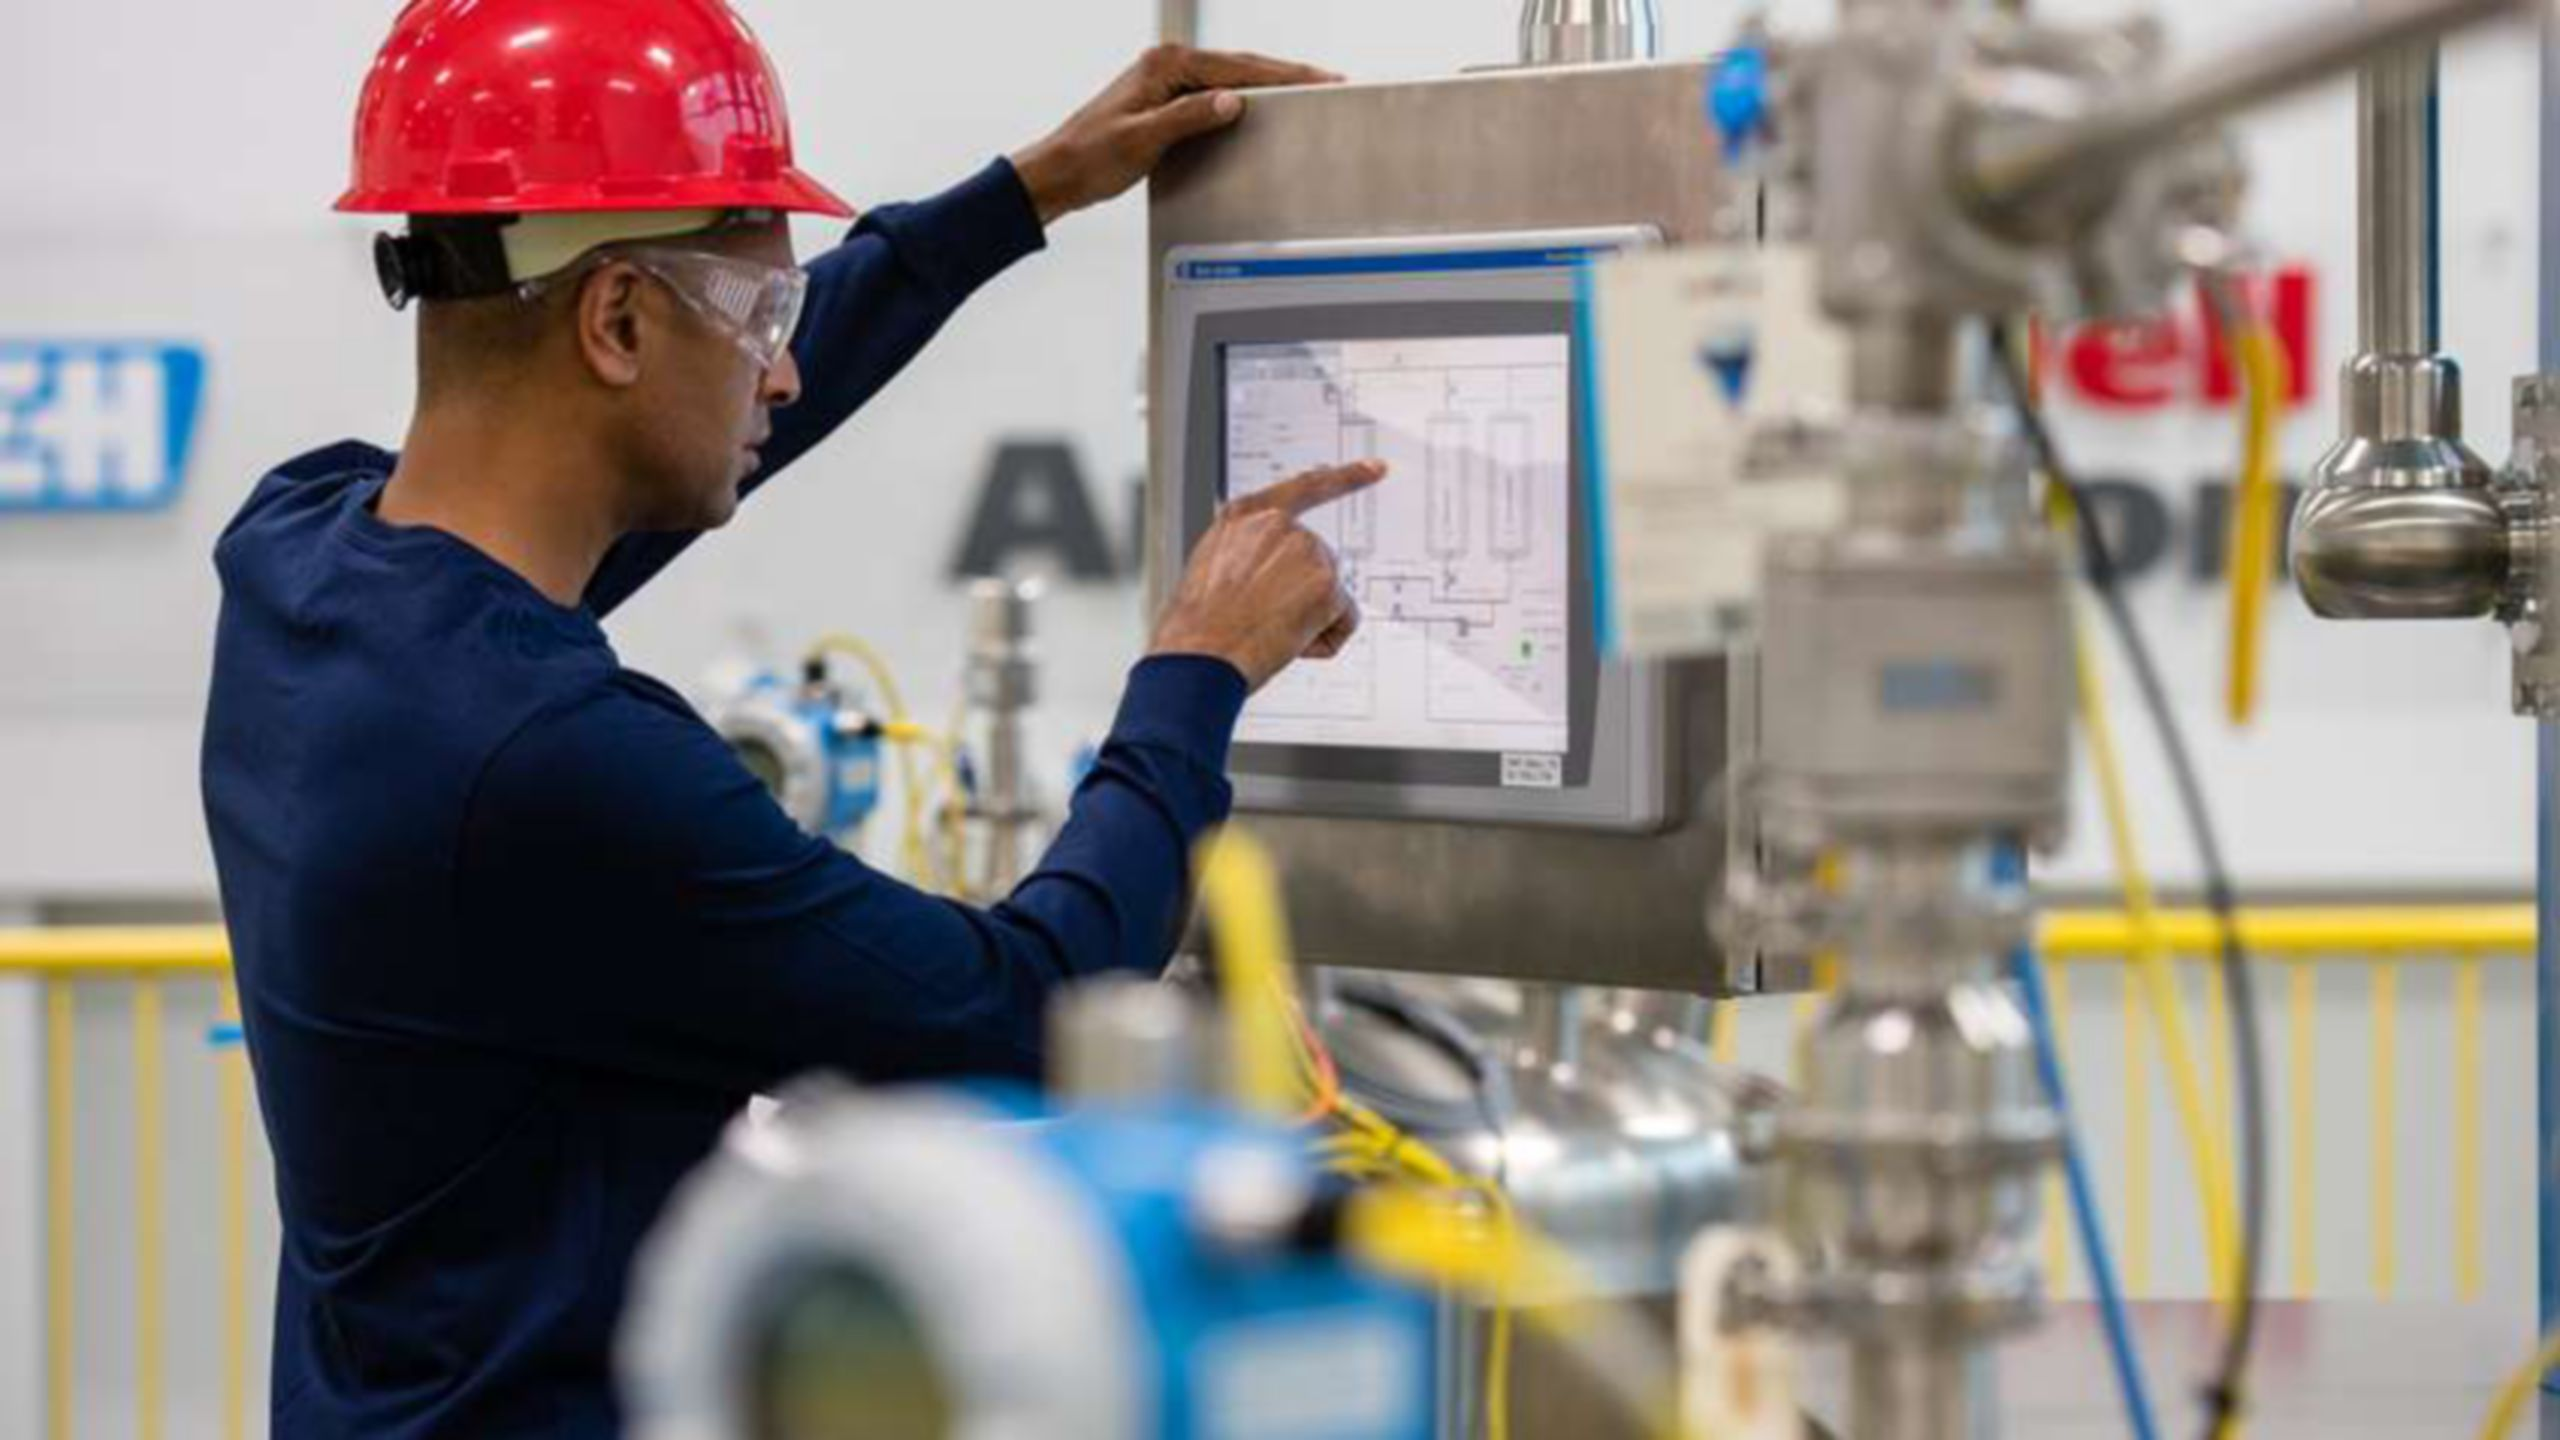 The Endress+Hauser Process Training Unit (PTU) on May 21 and May 22, 2018 in Greenwood, IN.